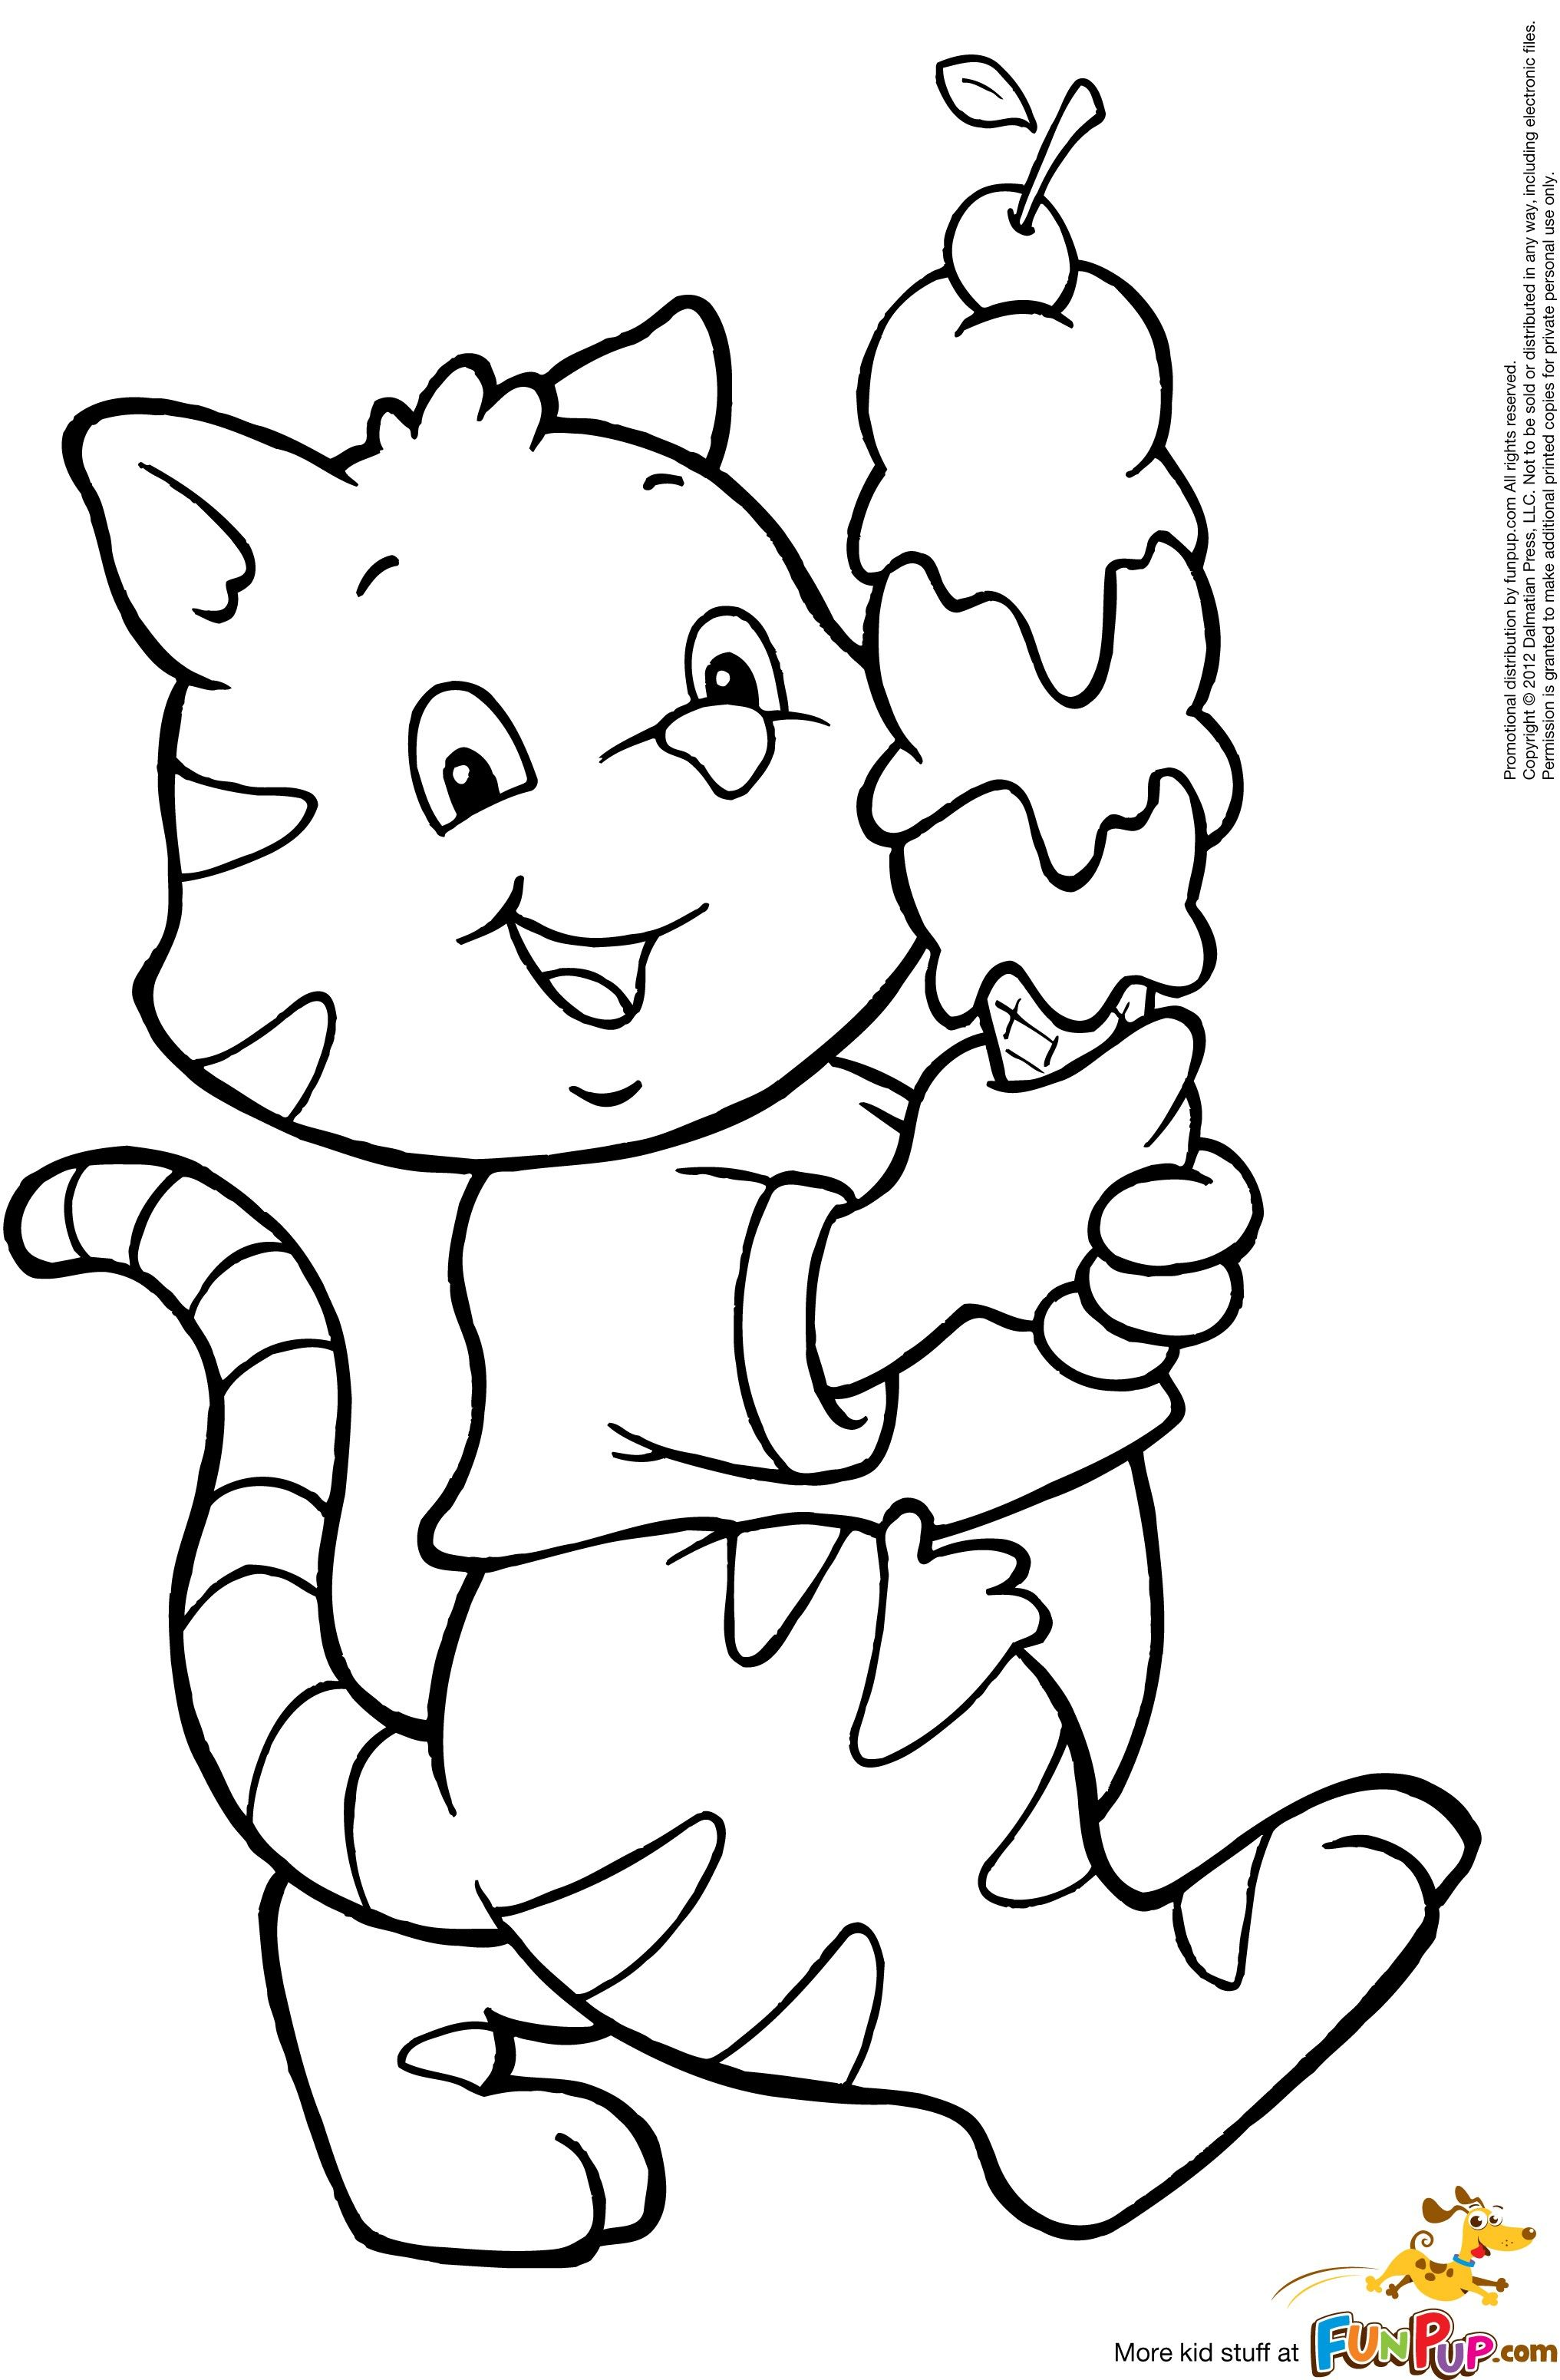 Cat ice cream coloring pages ~ Ice Cream Cat $0.00 | Coloring pages | Pinterest | Digi stamps